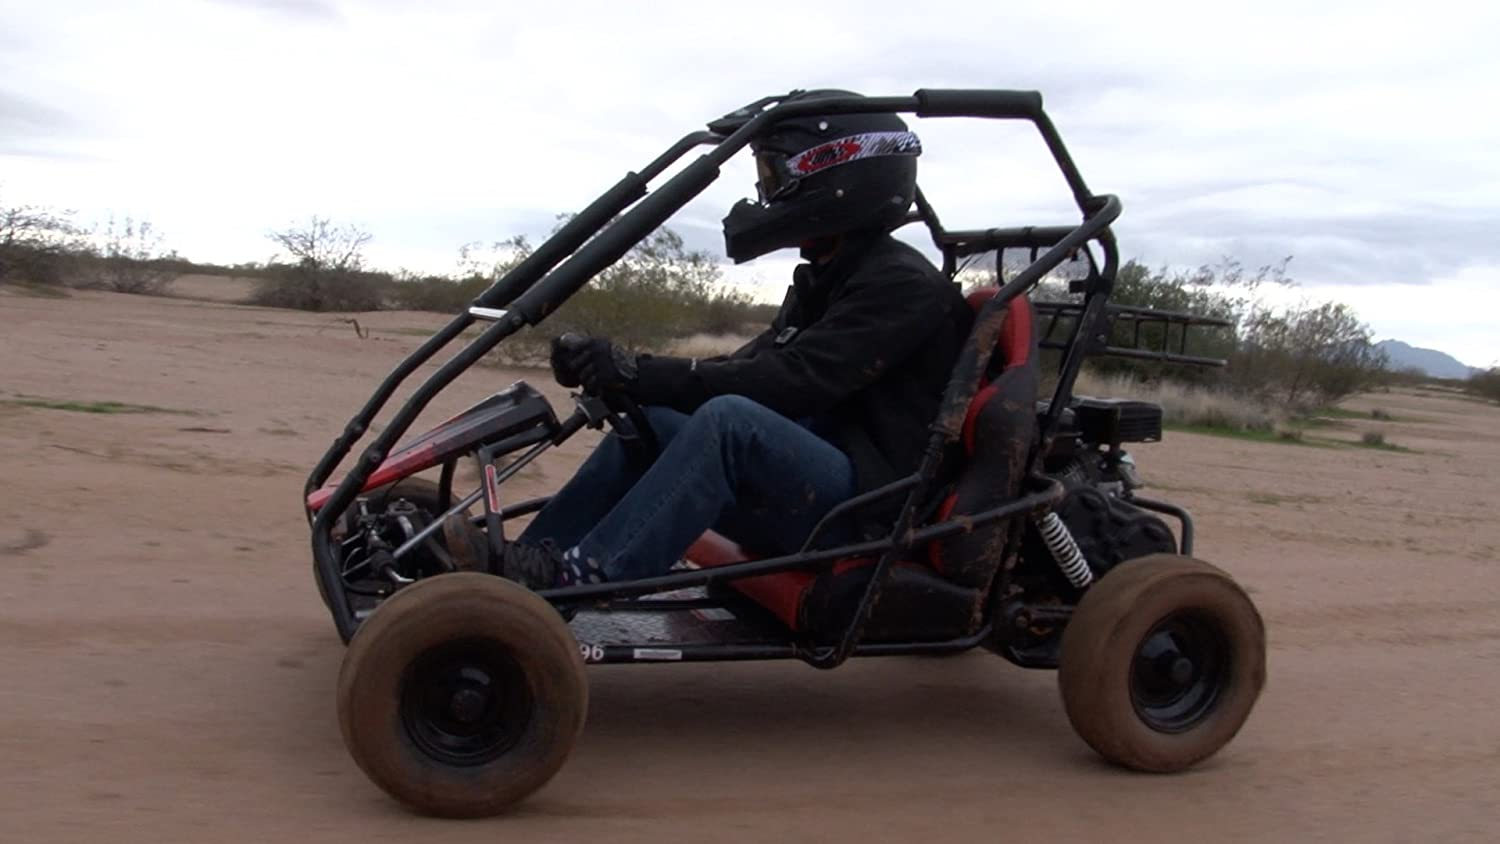 Coleman Powersports 196cc 65hp Kt196 Go Kart Gas Off Road Safety Harness Powered Cart For Adults And Kids 13 Automotive